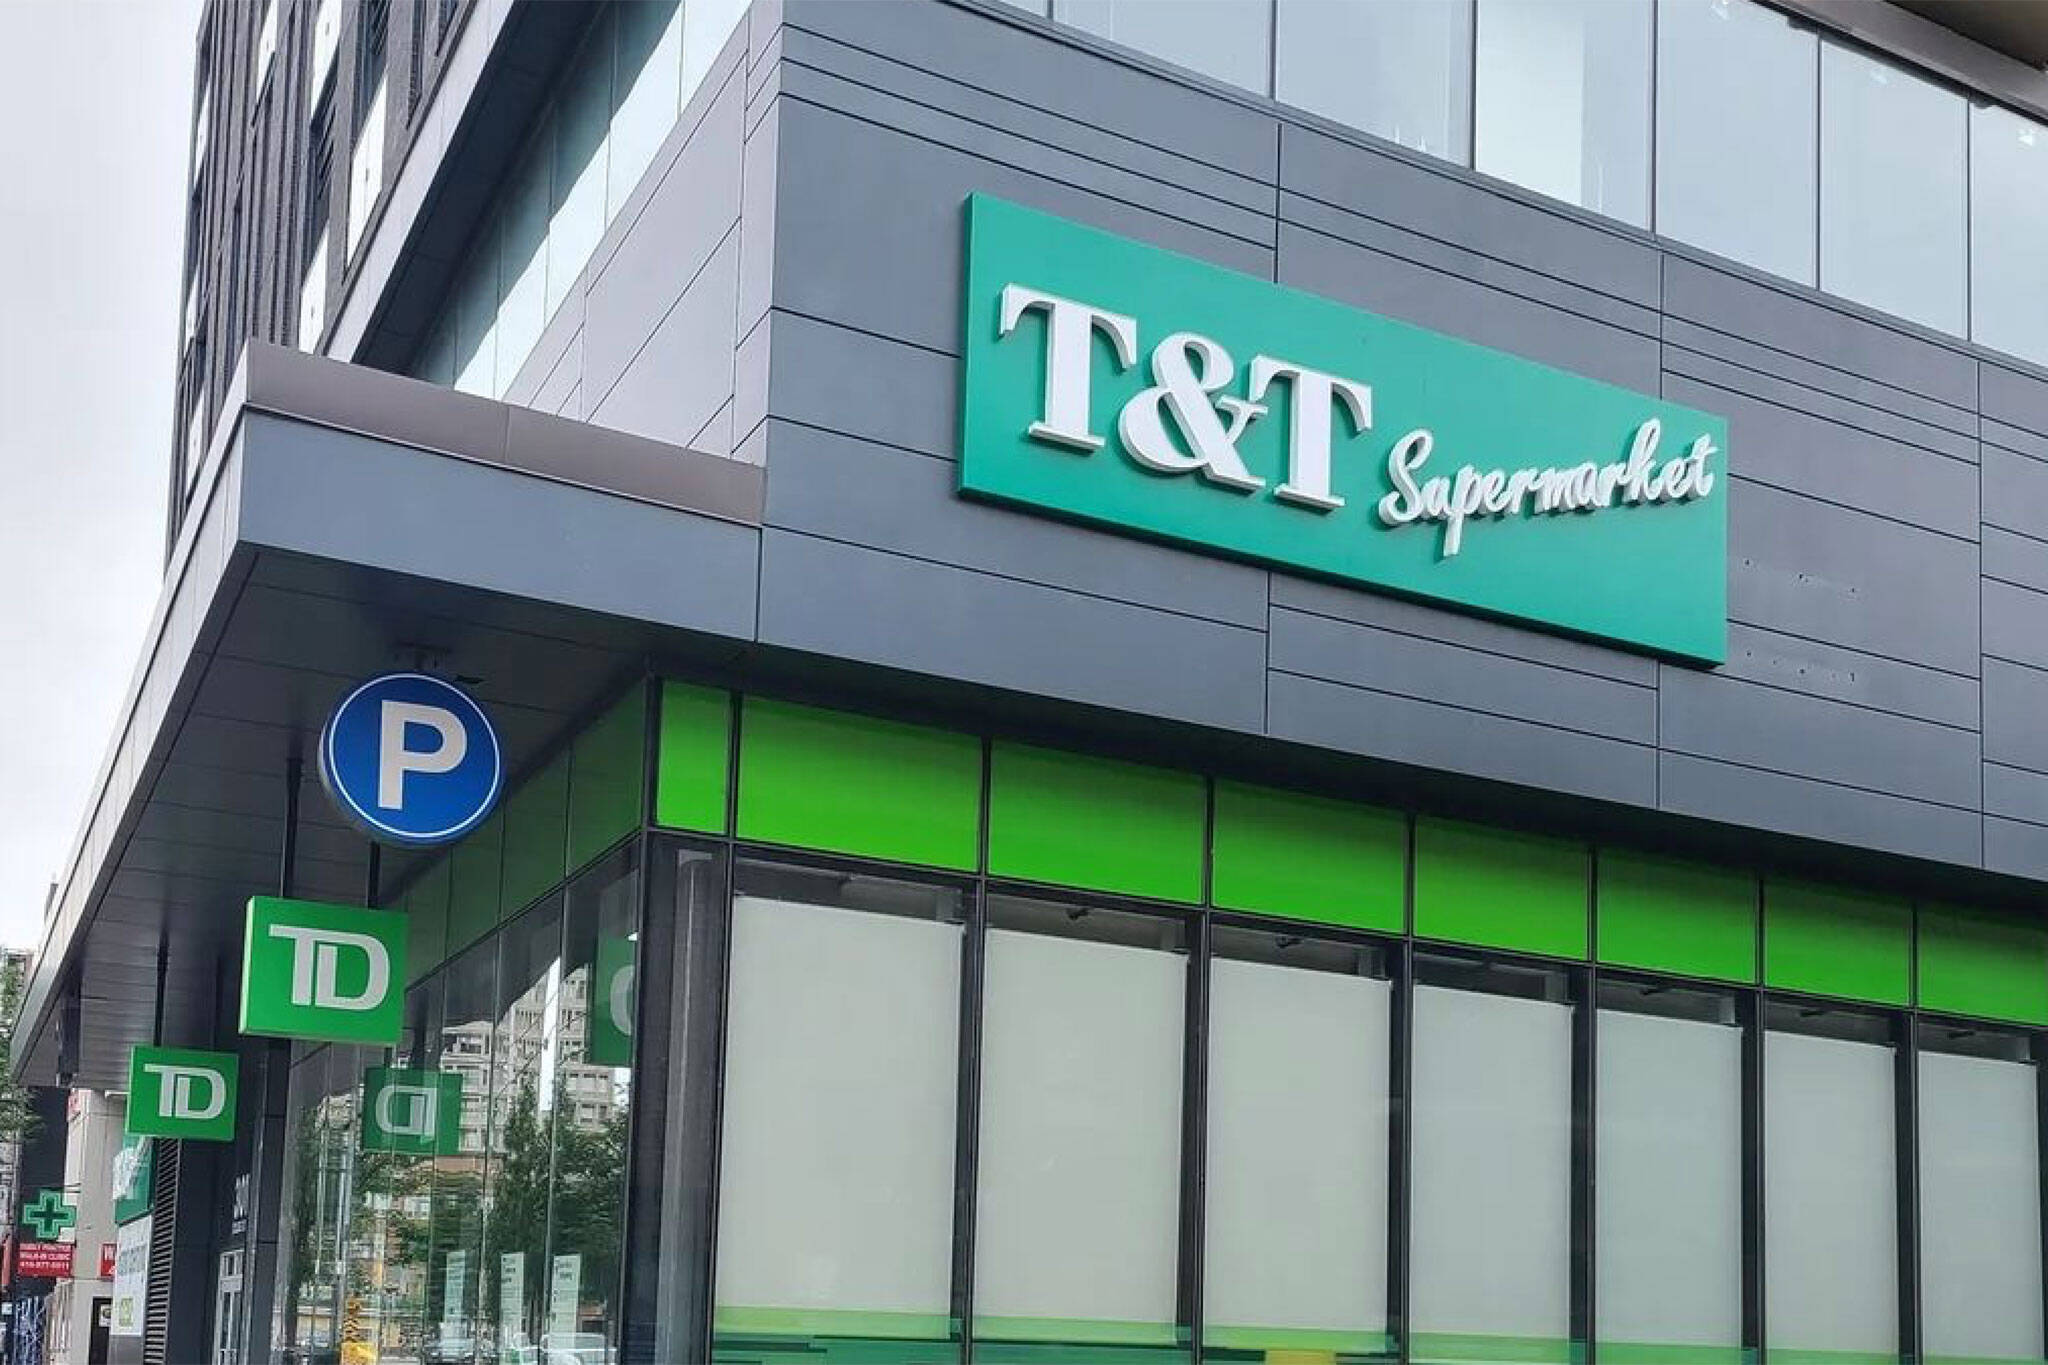 t and t supermarket college